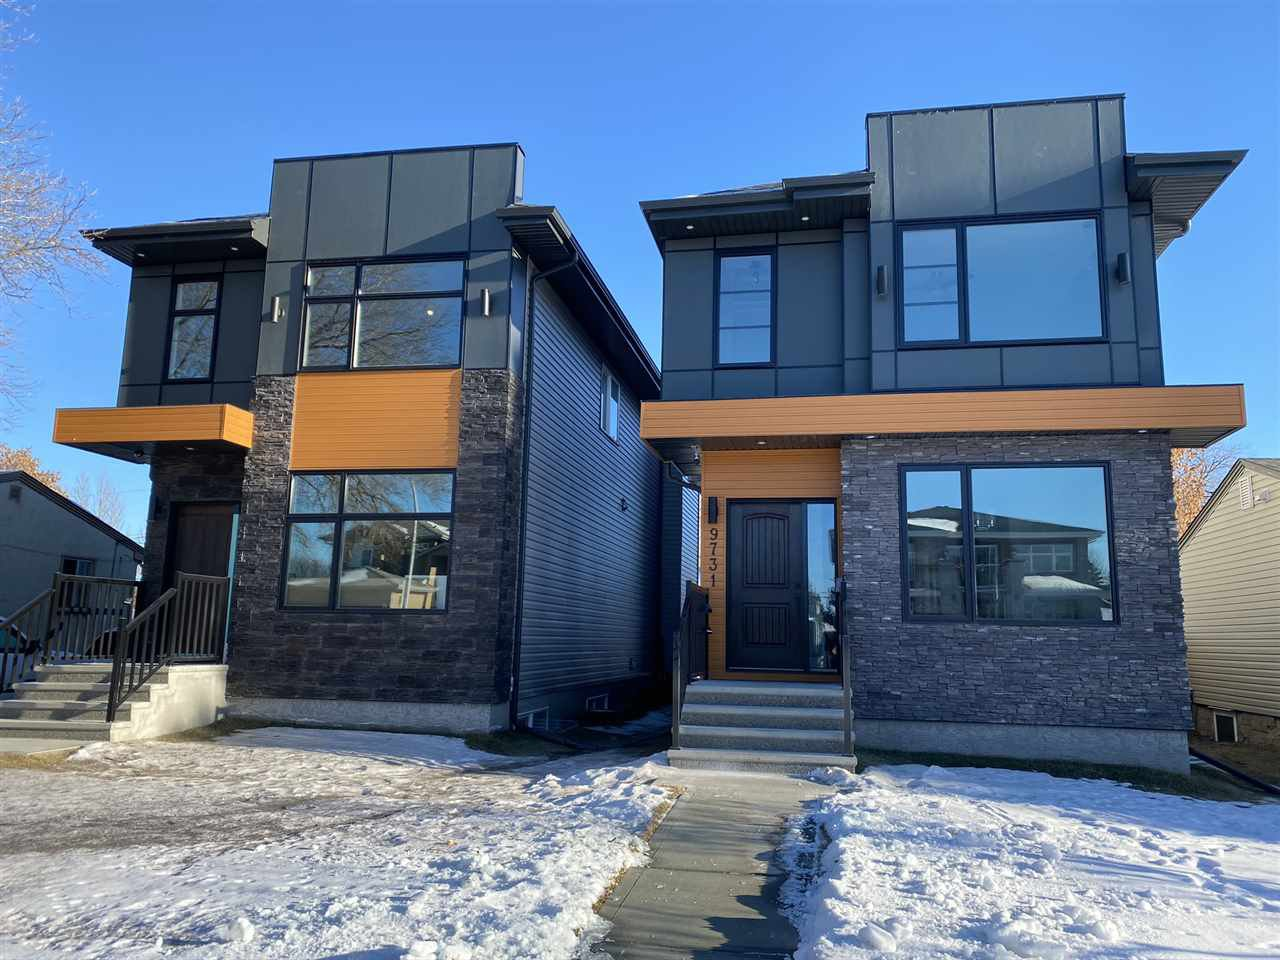 Main Photo: 9731 161 Street NW in Edmonton: Zone 22 House for sale : MLS®# E4224591